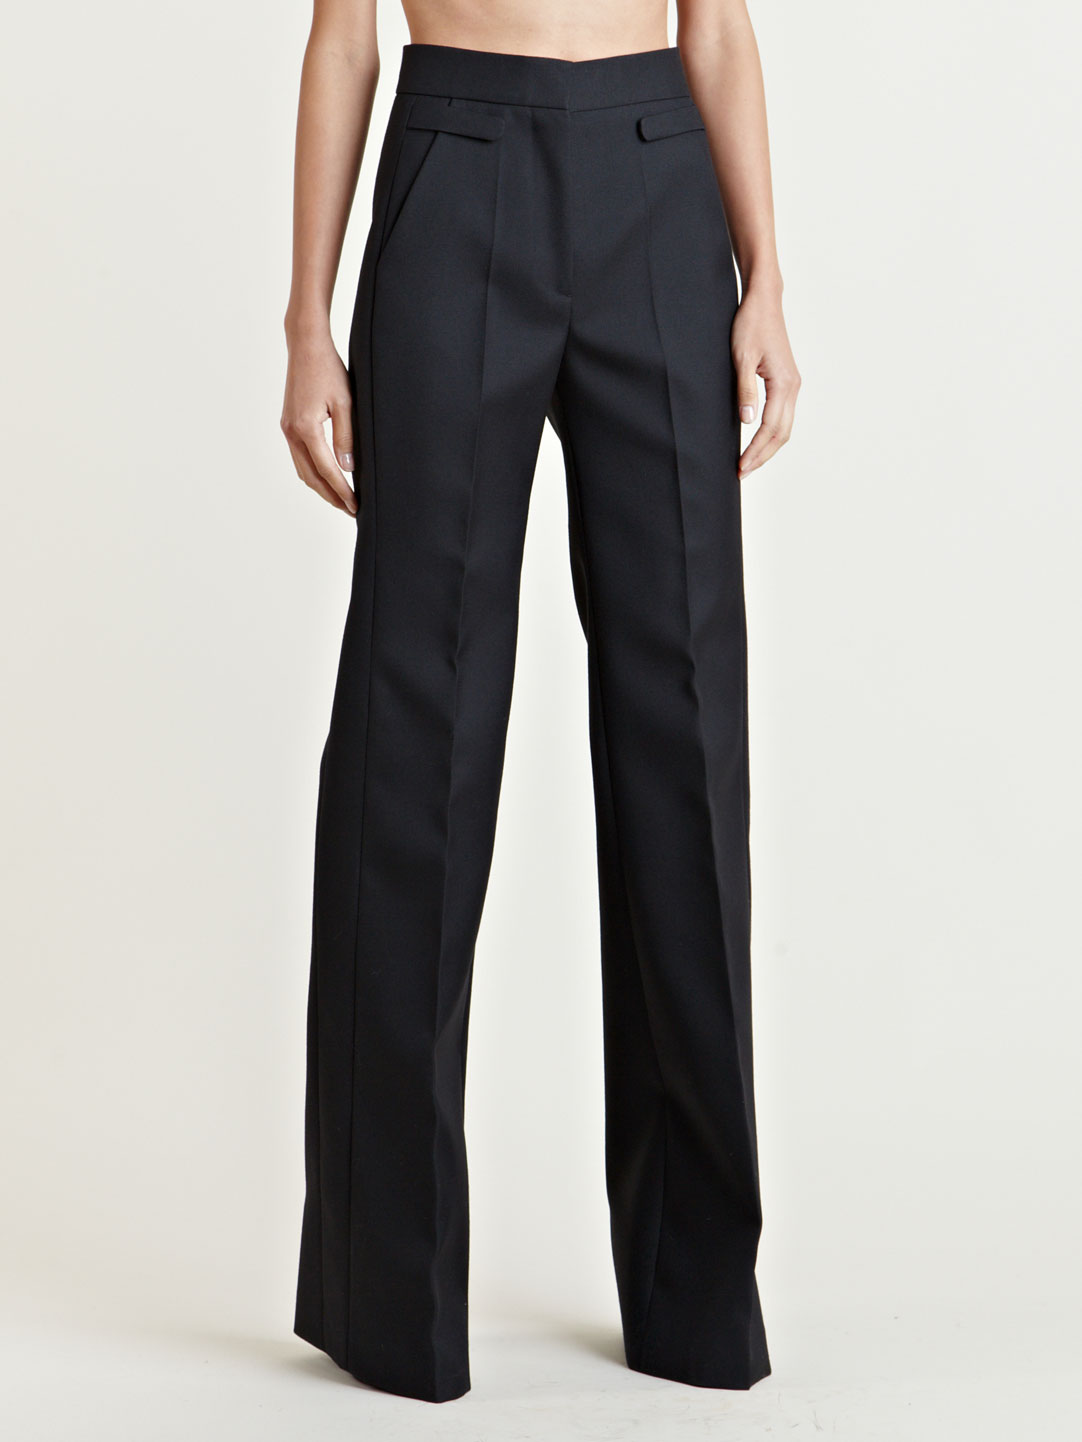 Lyst - Givenchy Womens High Waisted Wide Leg Pants in Black